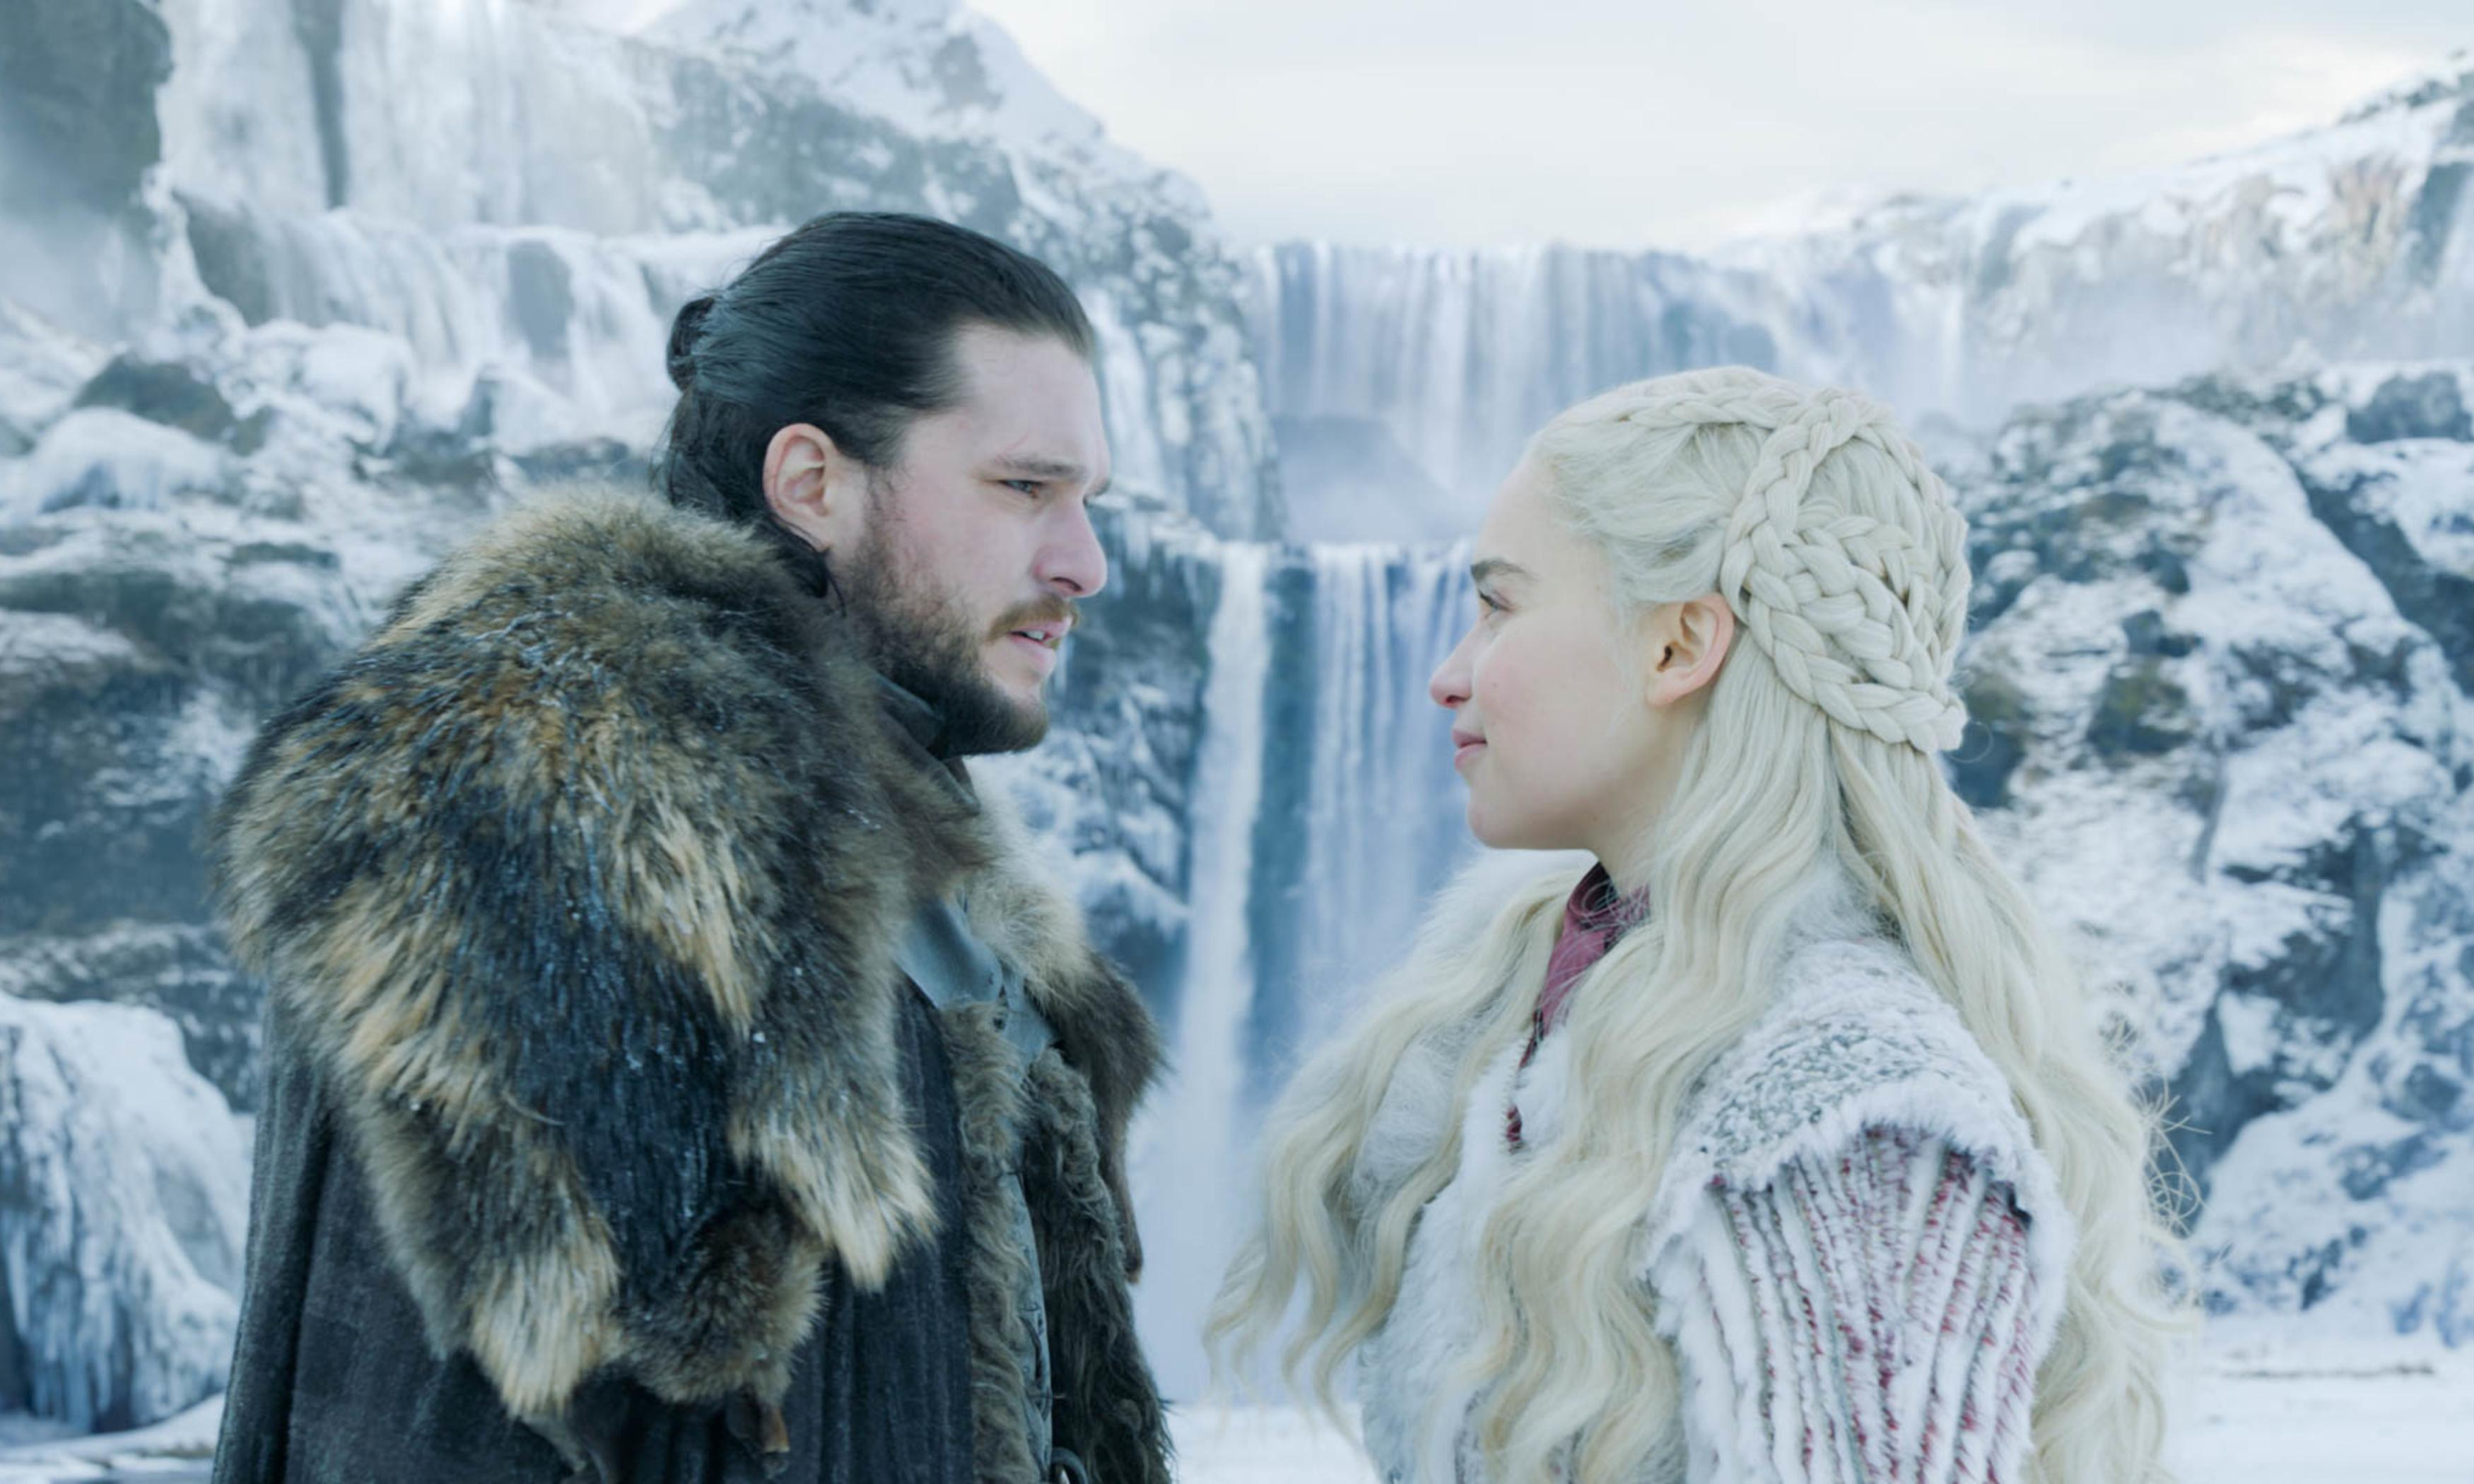 George RR Martin: the end of Game of Thrones on TV was a liberation